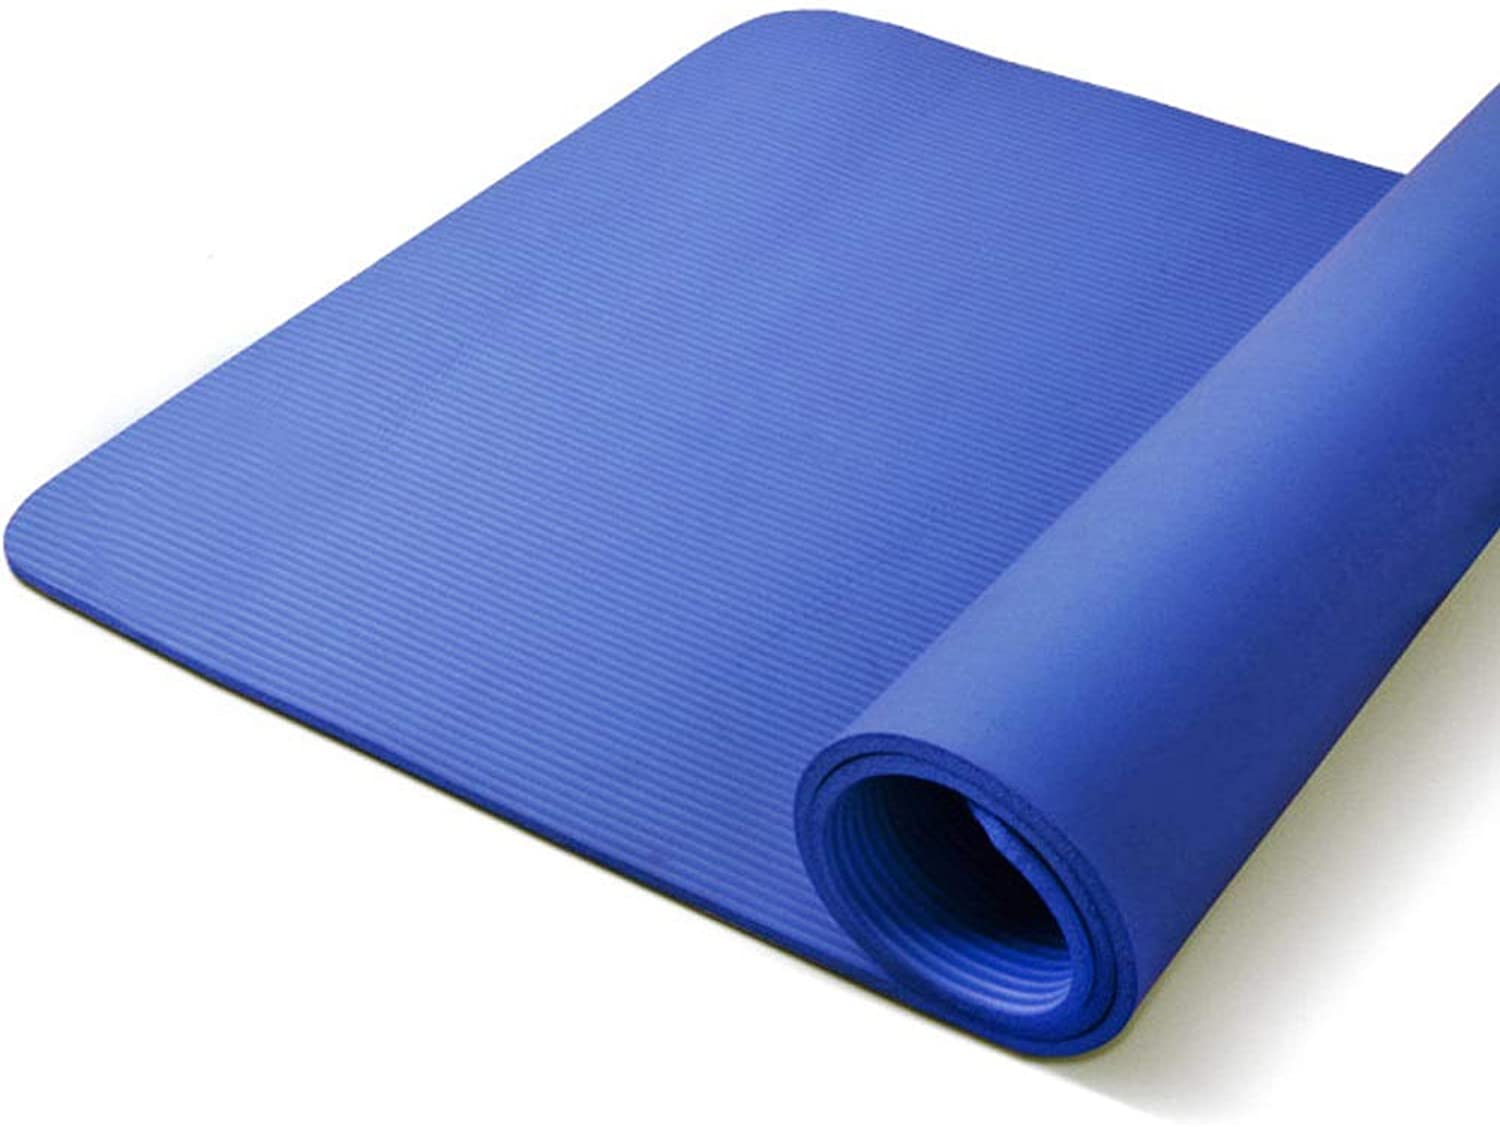 Double Use 1 2 inches Extra Thick 79  51  Long High Density AntiTear NonSlip Exercise Mat, Yoga Mat, Pilates Mat with Carrying Strap for Fitness, Workout